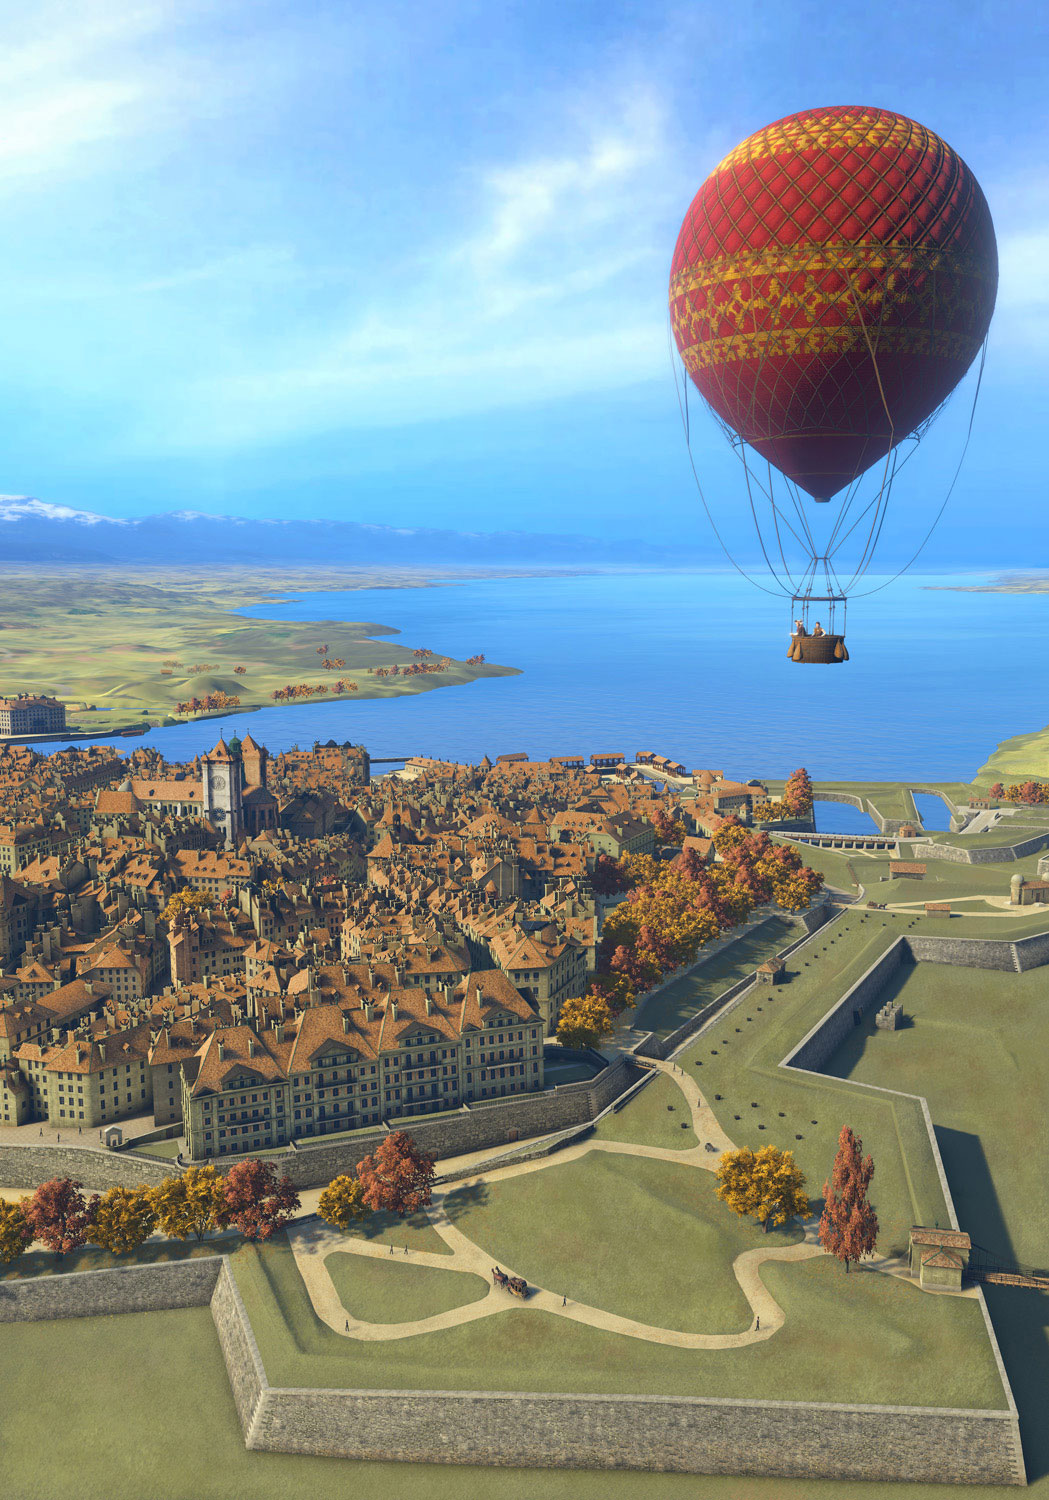 Geneva 1850 - Balloon flight